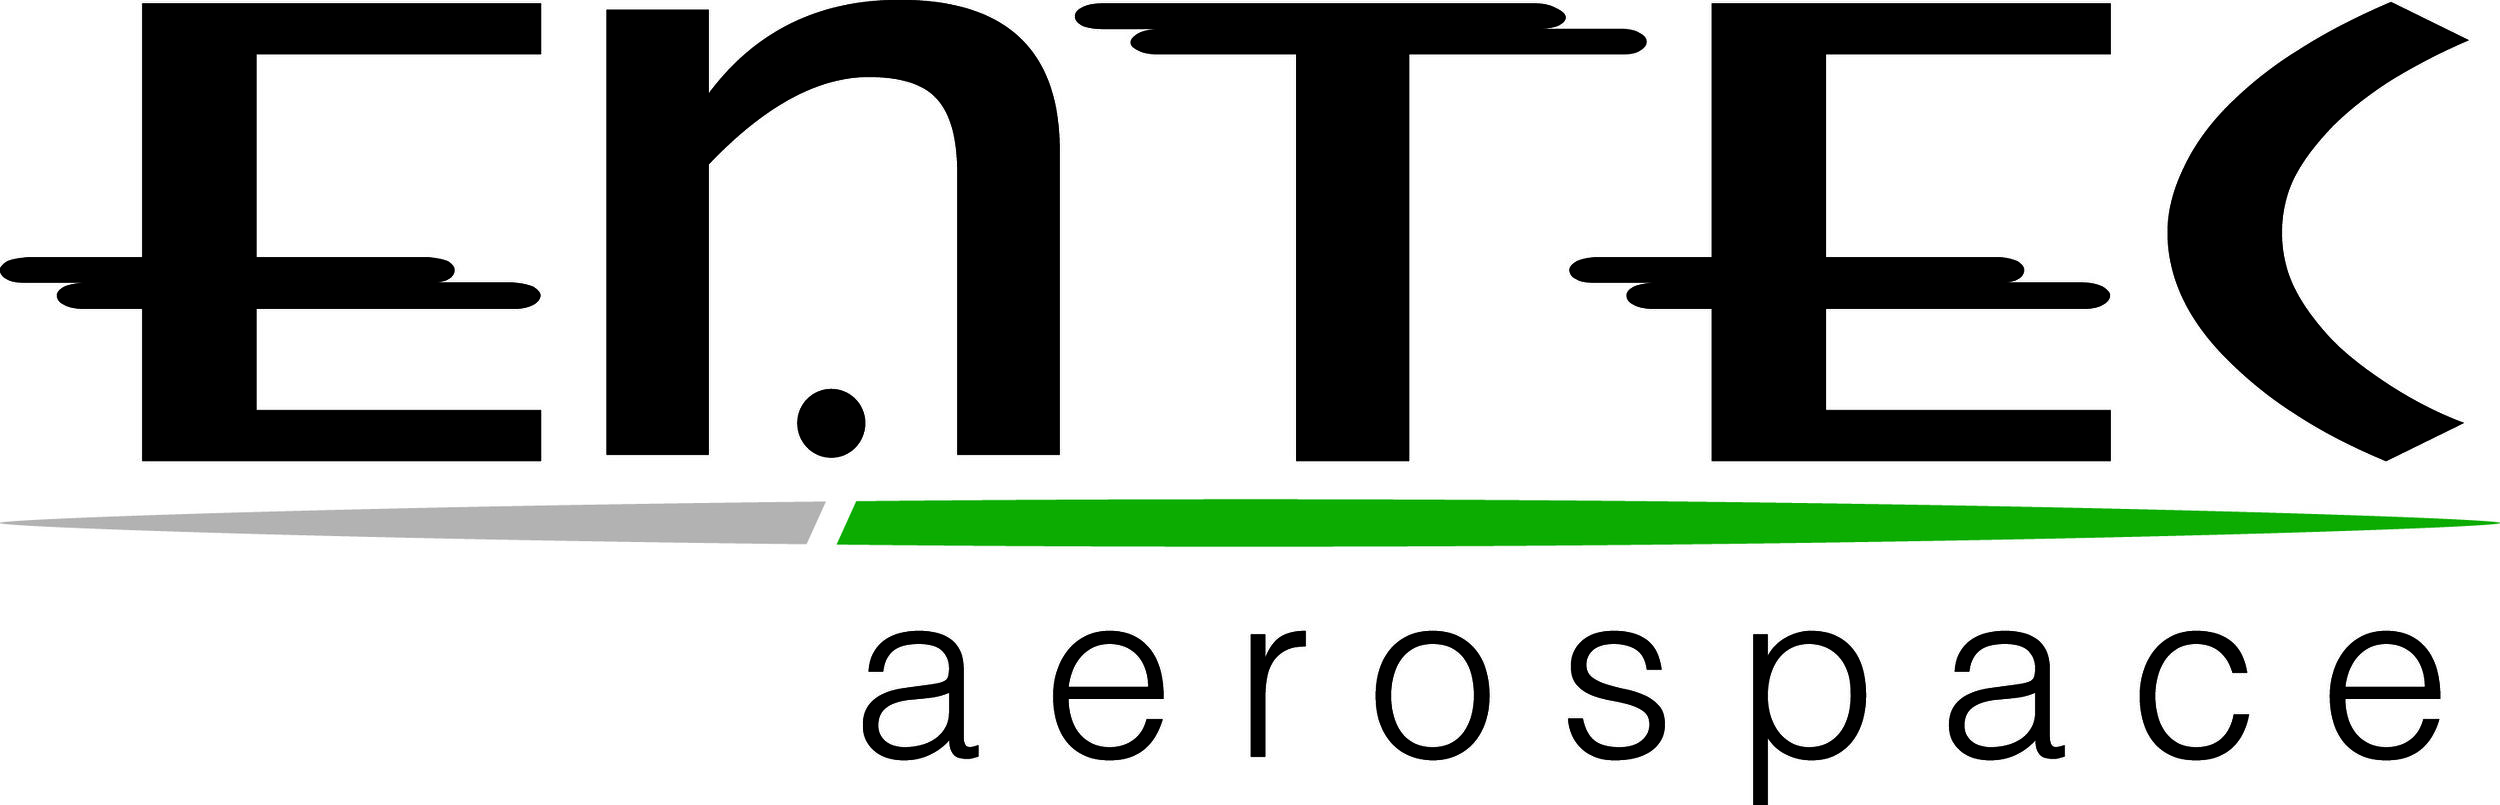 EnTEC aerospace : HELIPUERTOS